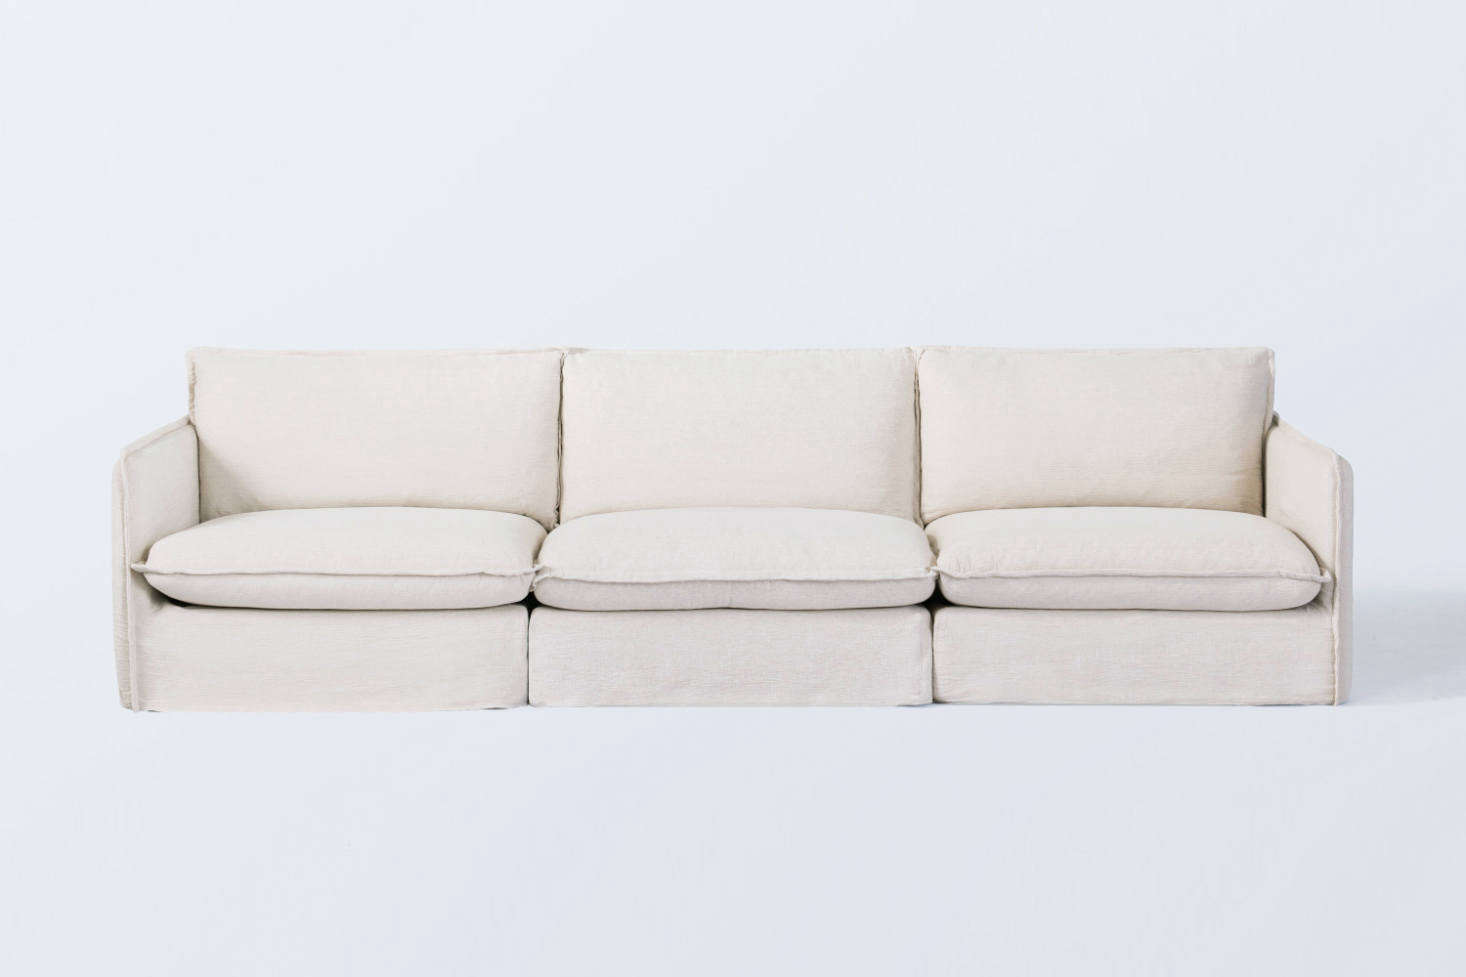 How to Buy a Couch or Sofa That Will Last: Expert Advice